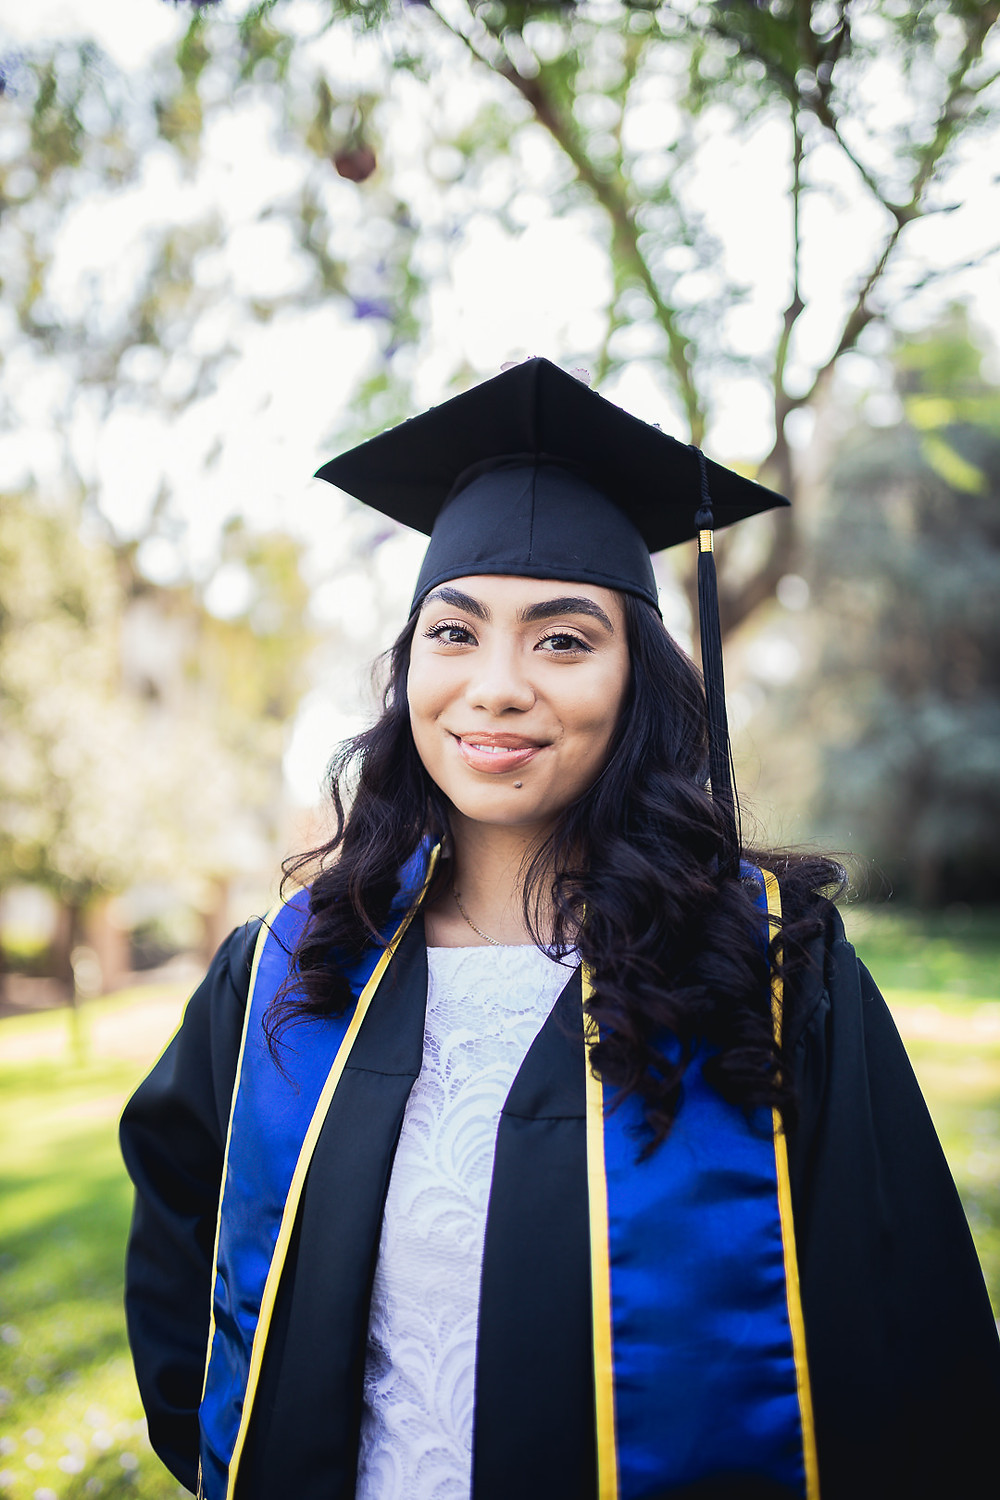 University of California Riverside Graduation Photos | Ashley 6